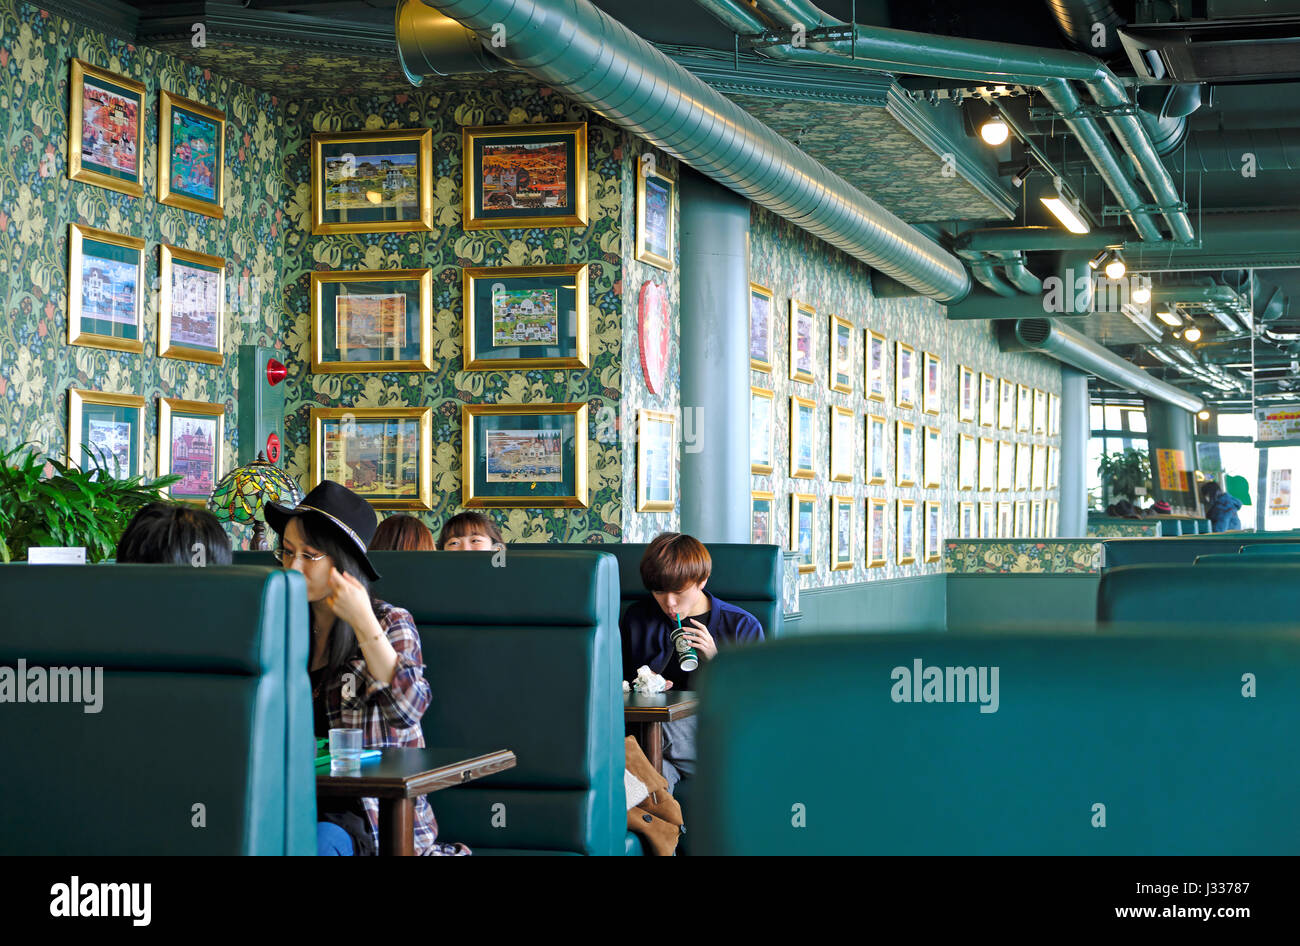 Burger Restaurant Stock Photos & Burger Restaurant Stock Images ...